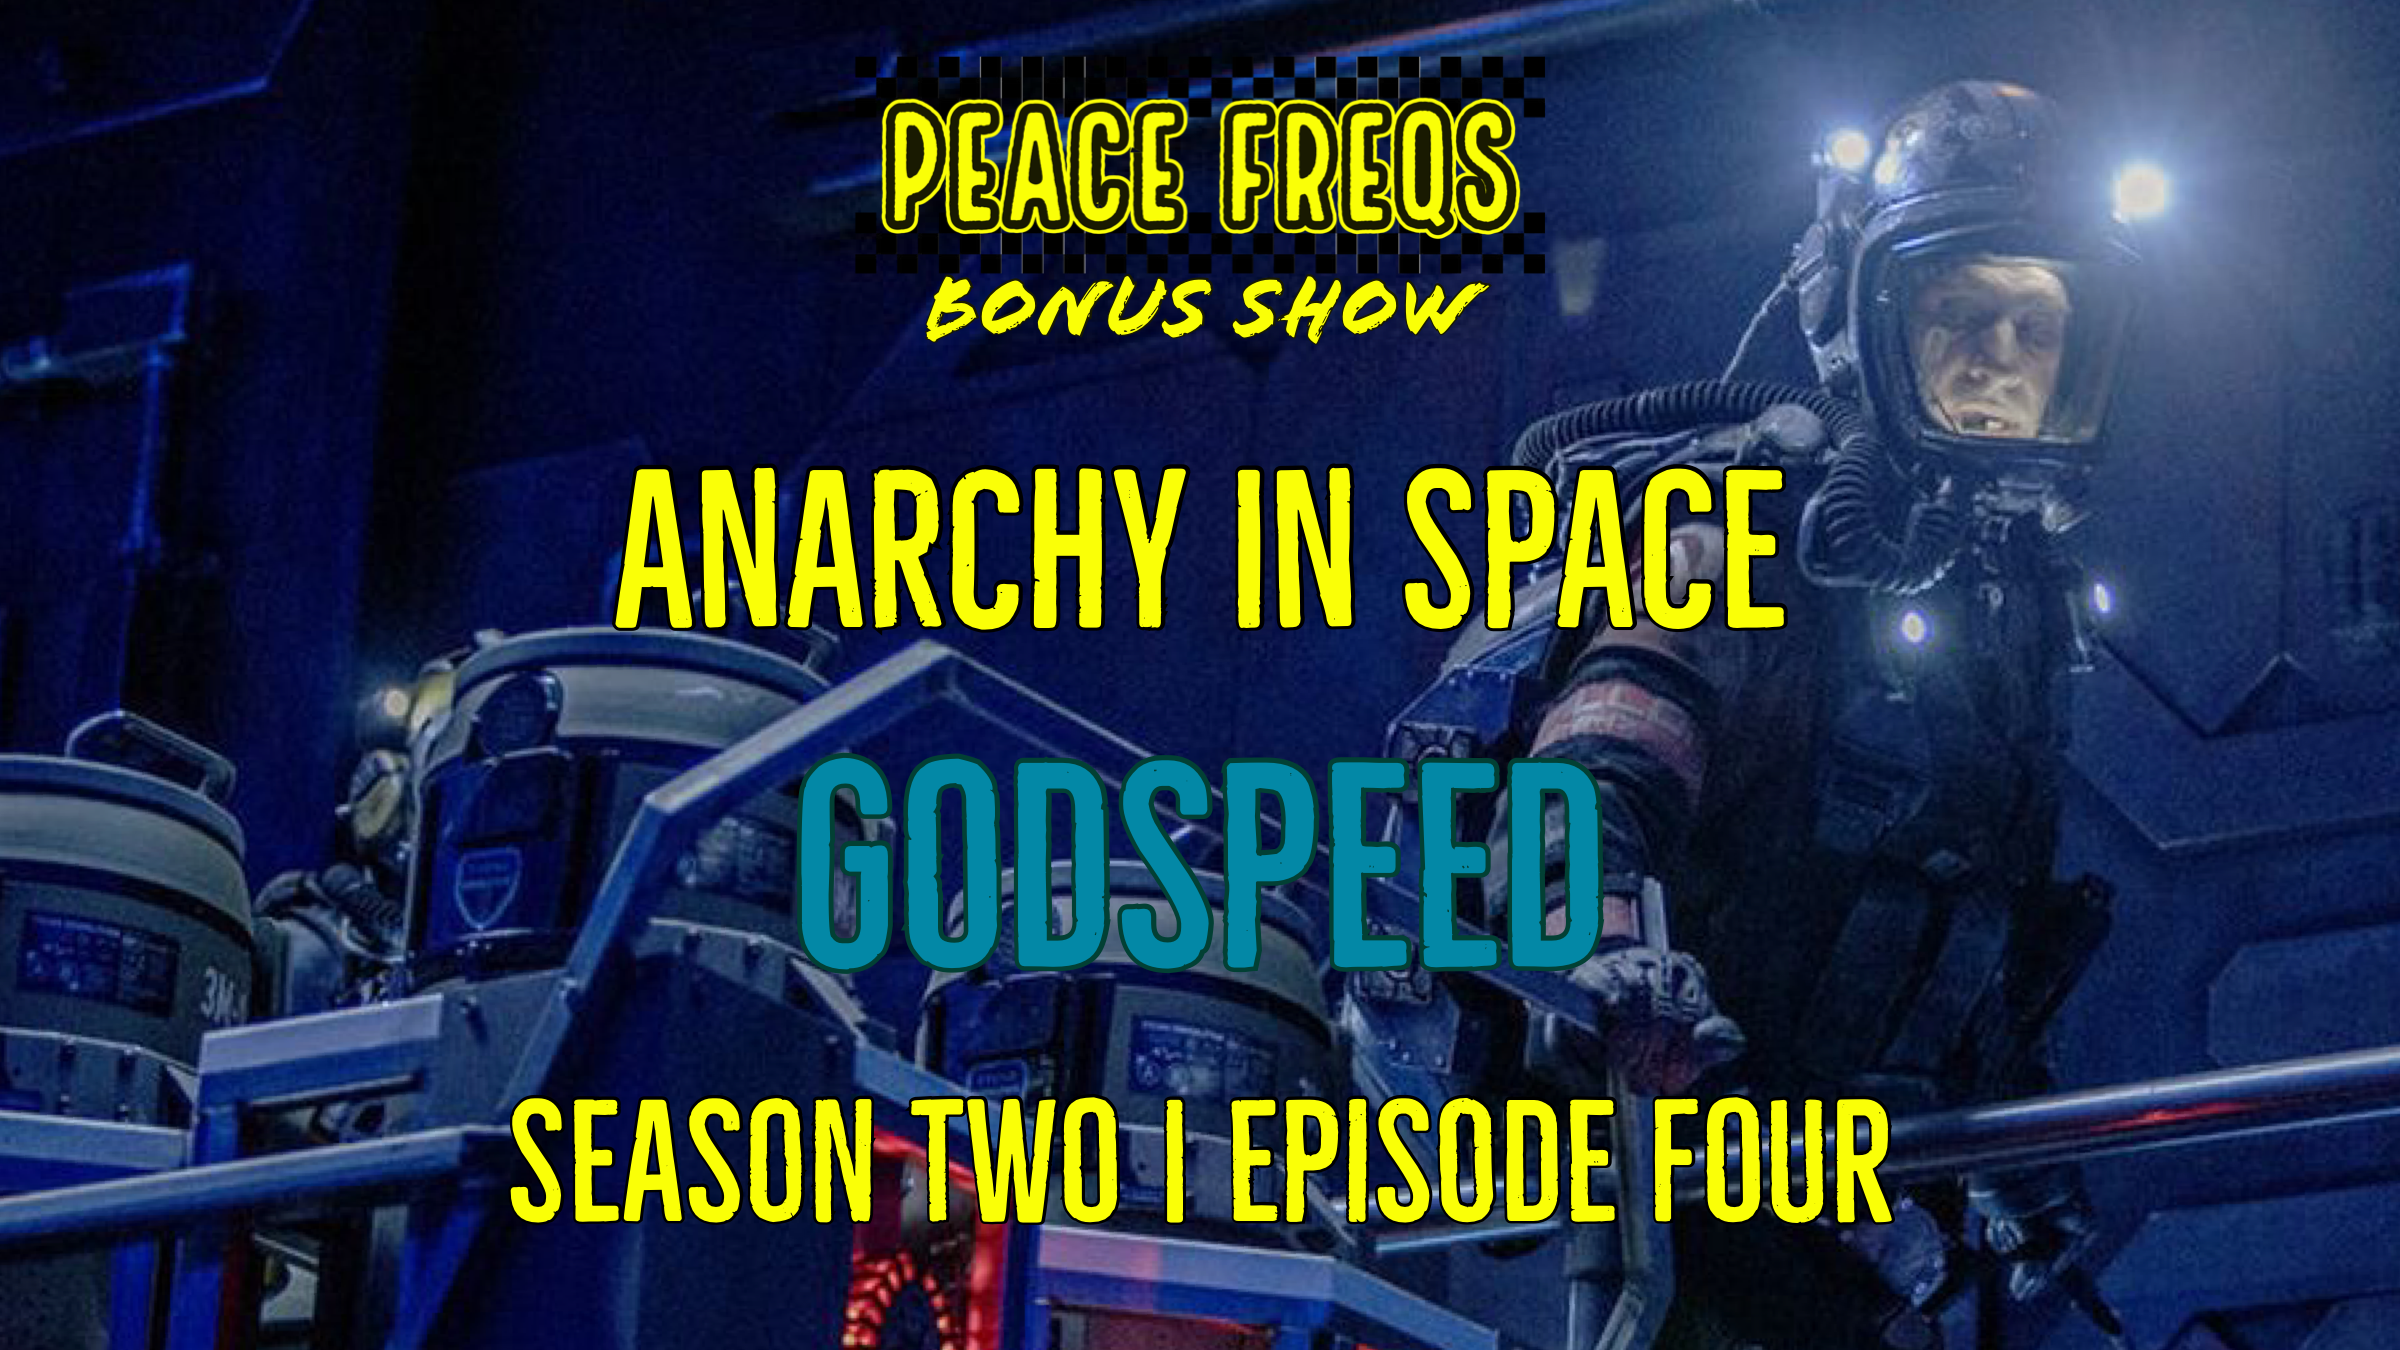 Godspeed Review: Analyzing The Expanse - Anarchy In Space 014 Title Card